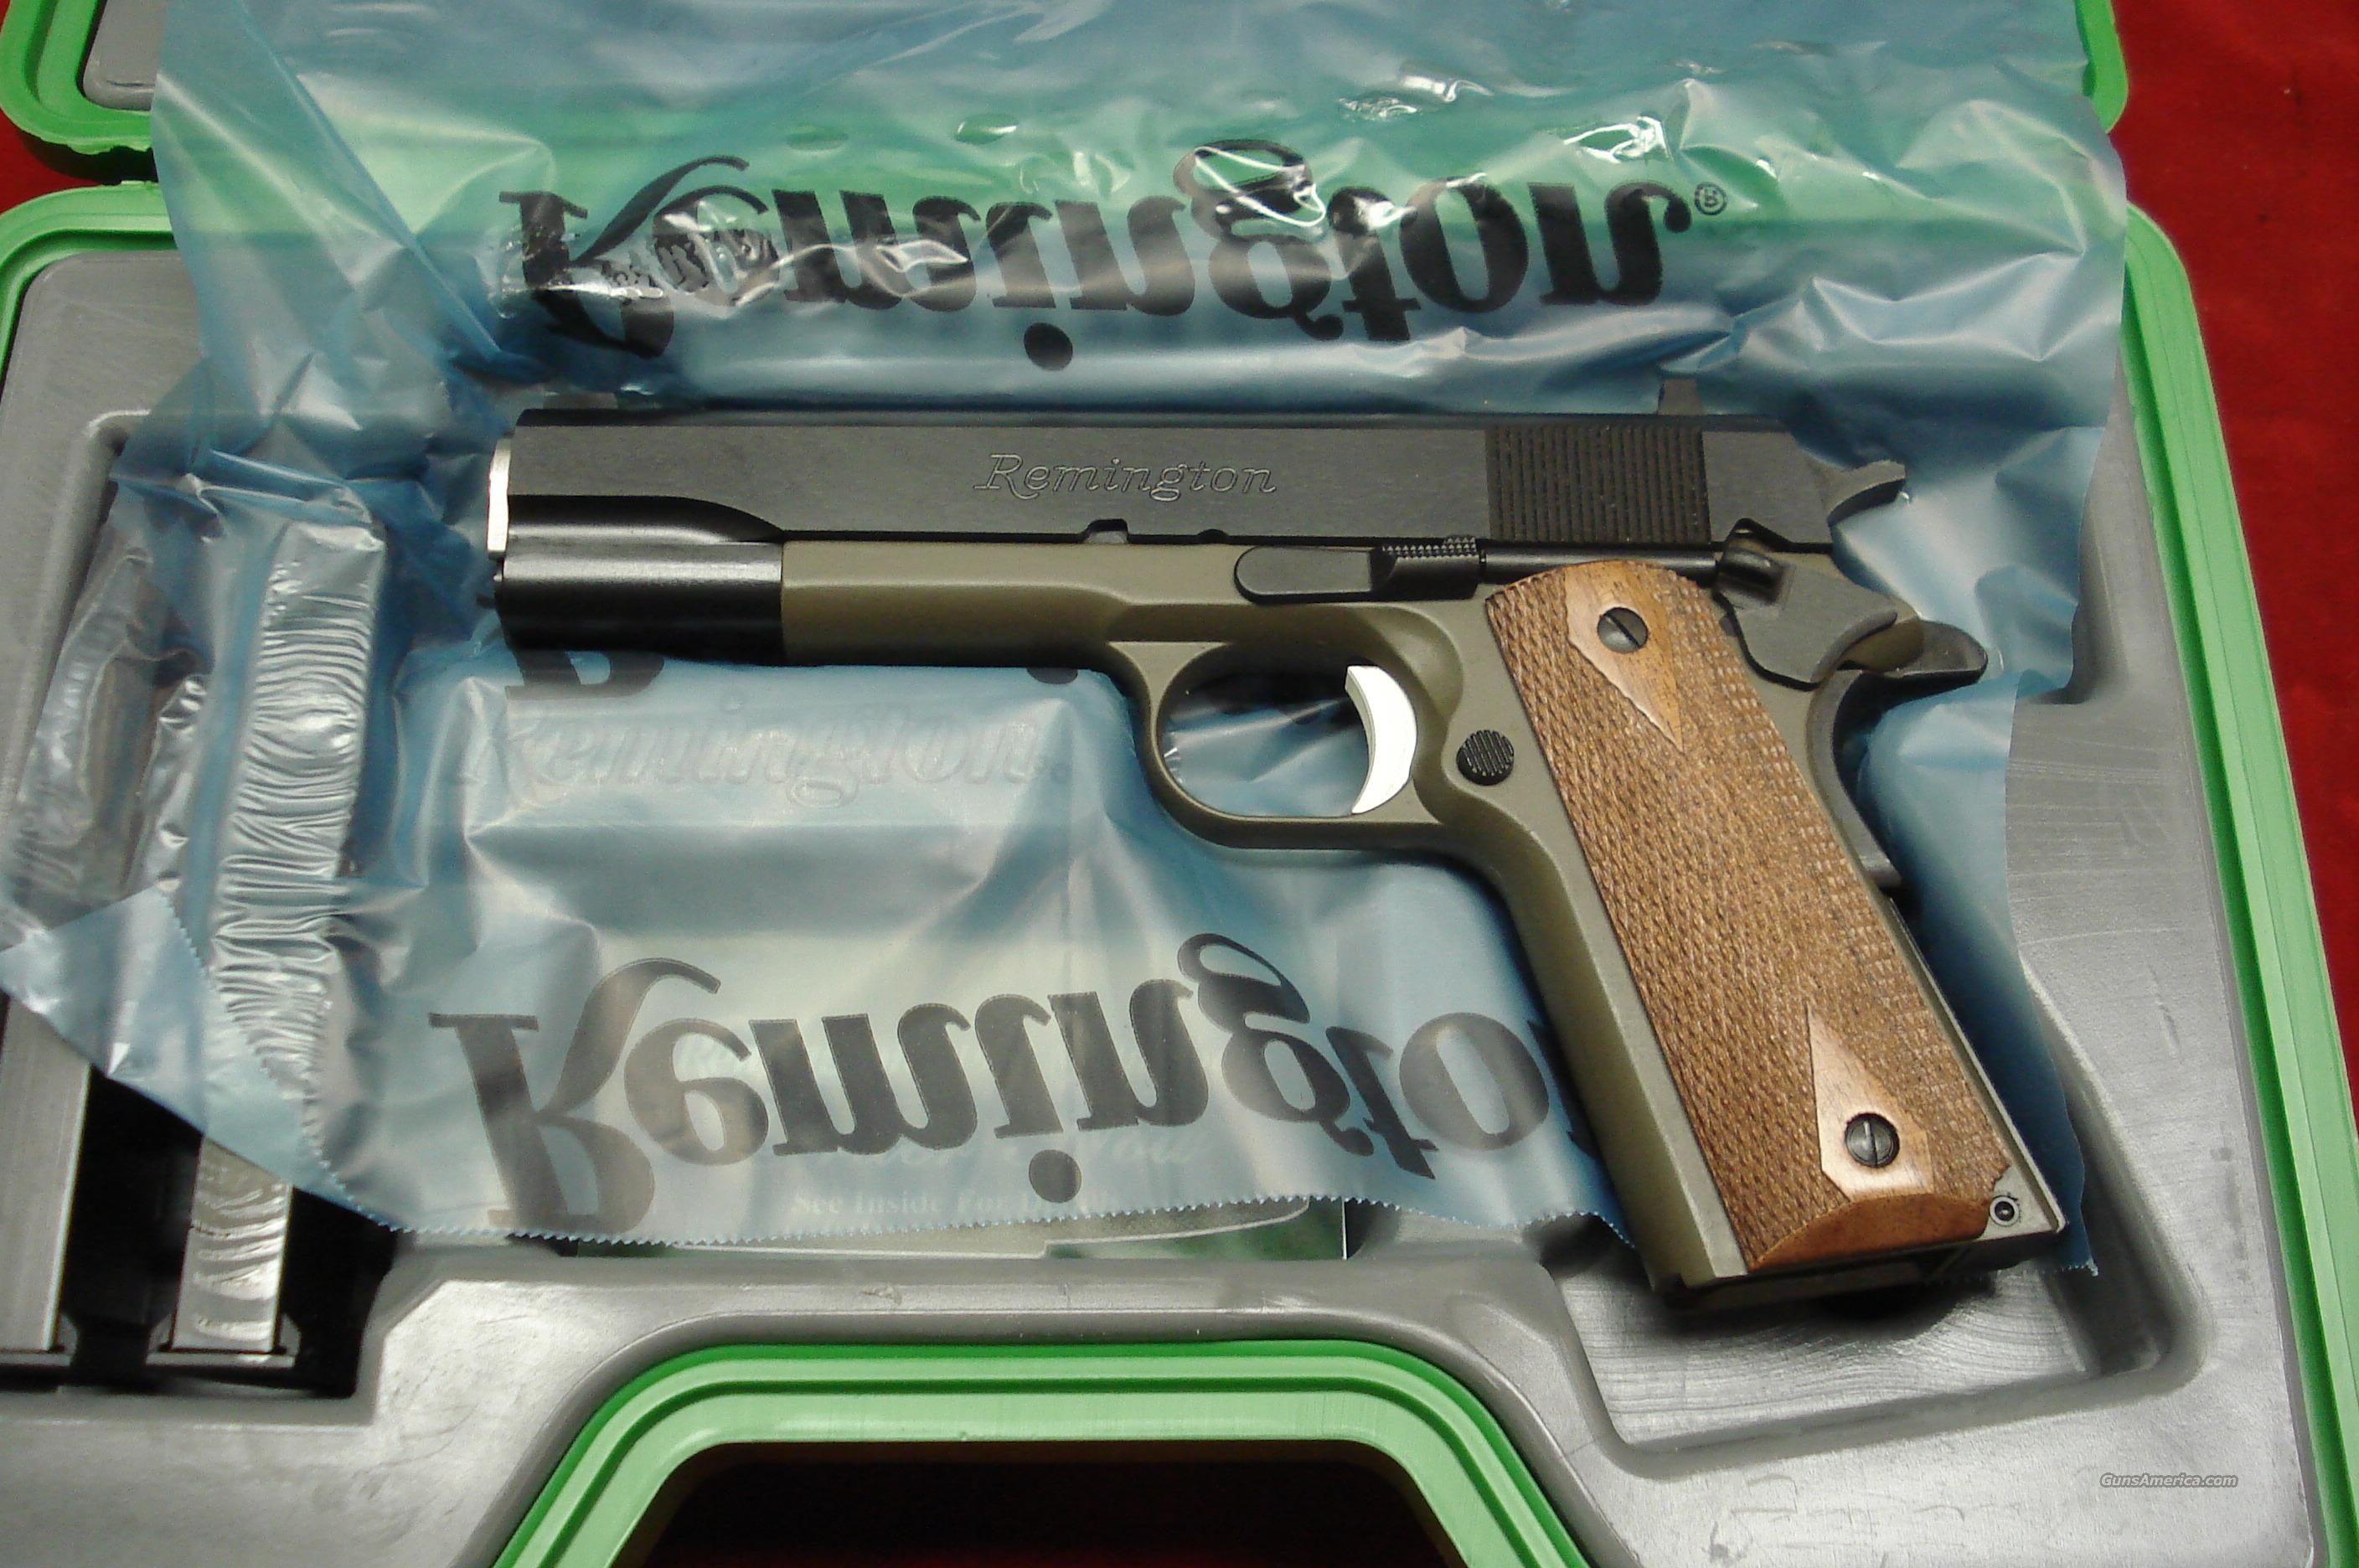 REMINGTON 1911 R1 45ACP GREEN DURACOAT FRAME WITH DOUBLE DIAMOND WALNUT GRIPS NEW {{ IN STOCK READY TO SHIP }}  Guns > Pistols > Remington Pistols - Modern